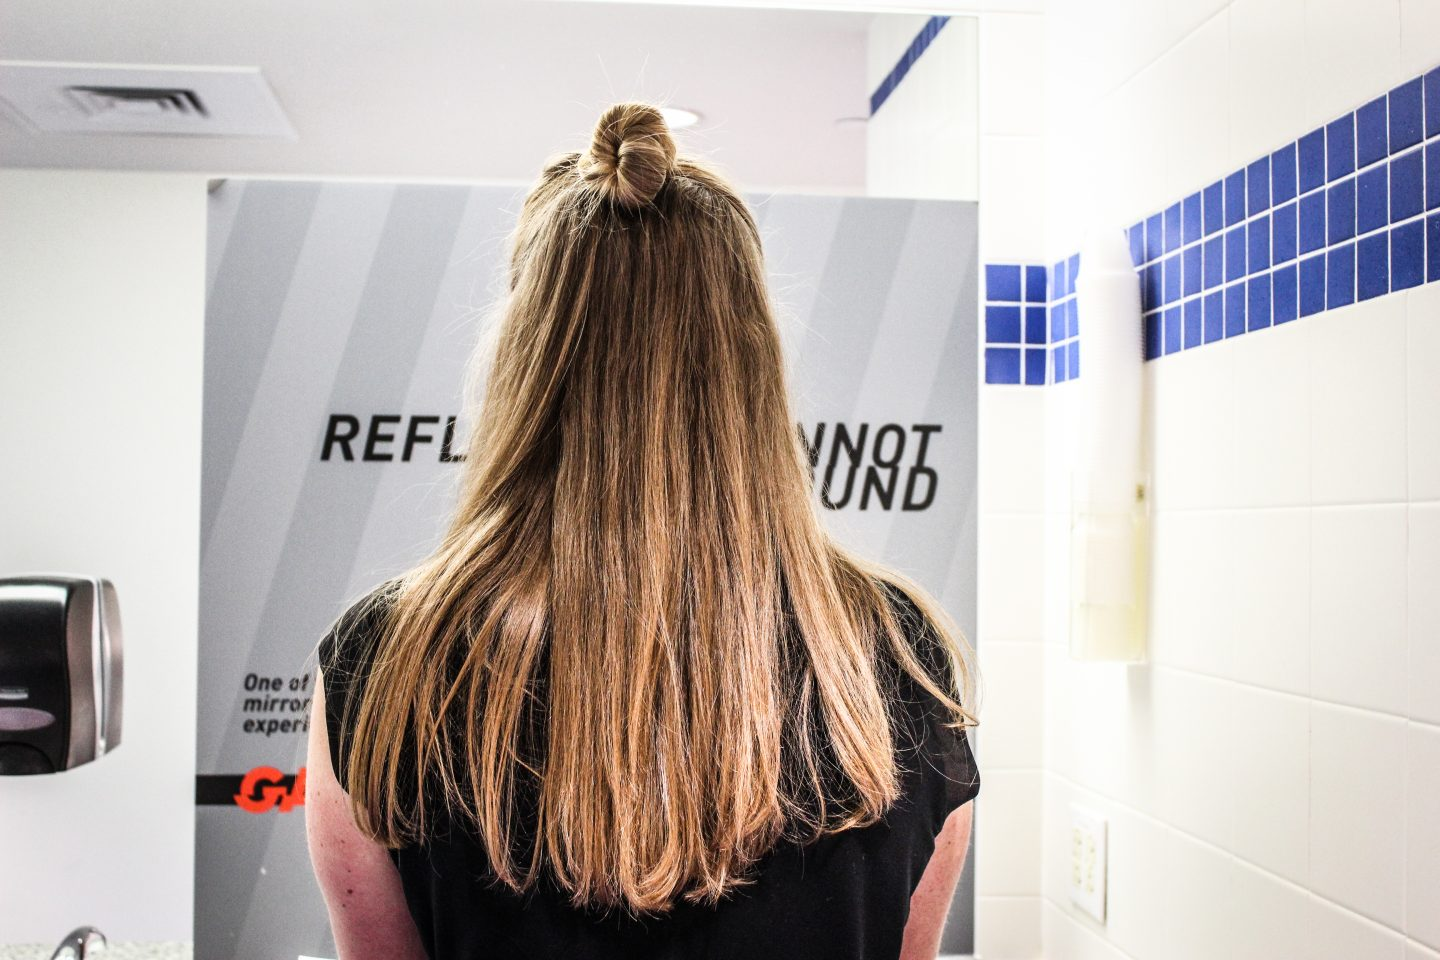 girl from the back looking into a covered mirror, mirror-free, girl standing in the restroom